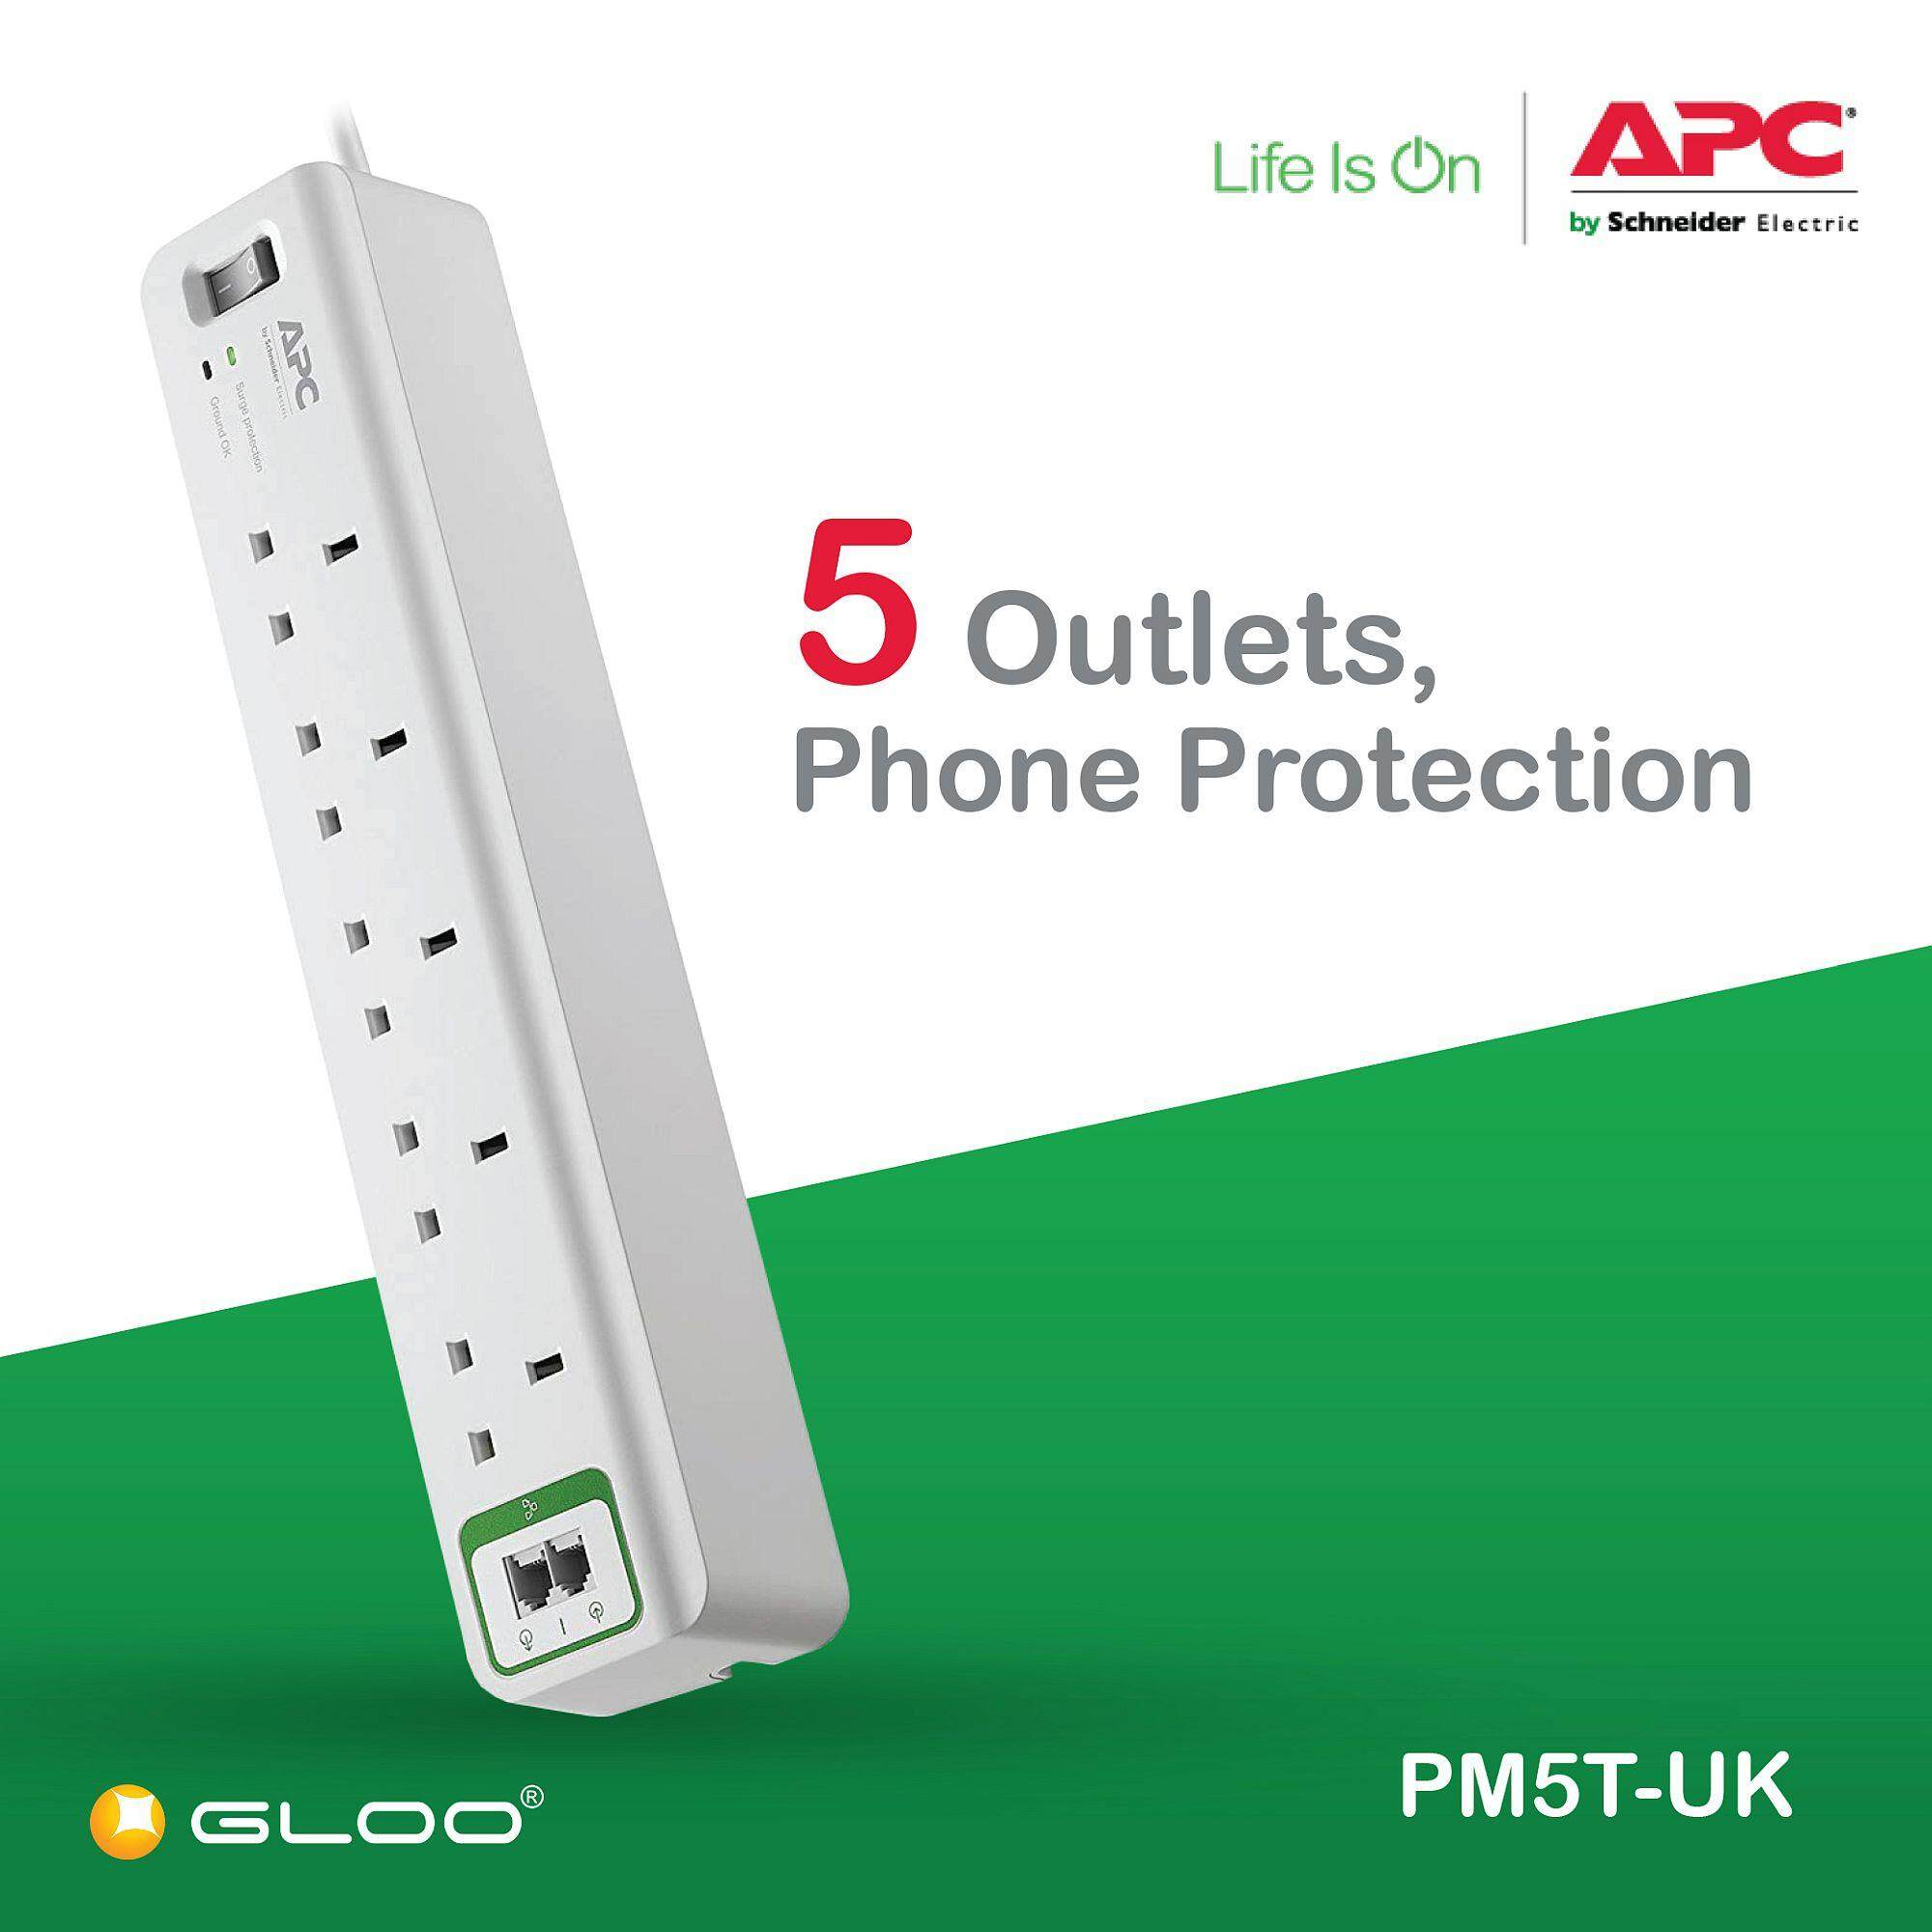 APC Essential SurgeArrest 5 outlets with phone protection 230V UK PM5T-UK - White [Free RM20 BHP Petrol Voucher from 29 Aug - 16 Sept 2019]